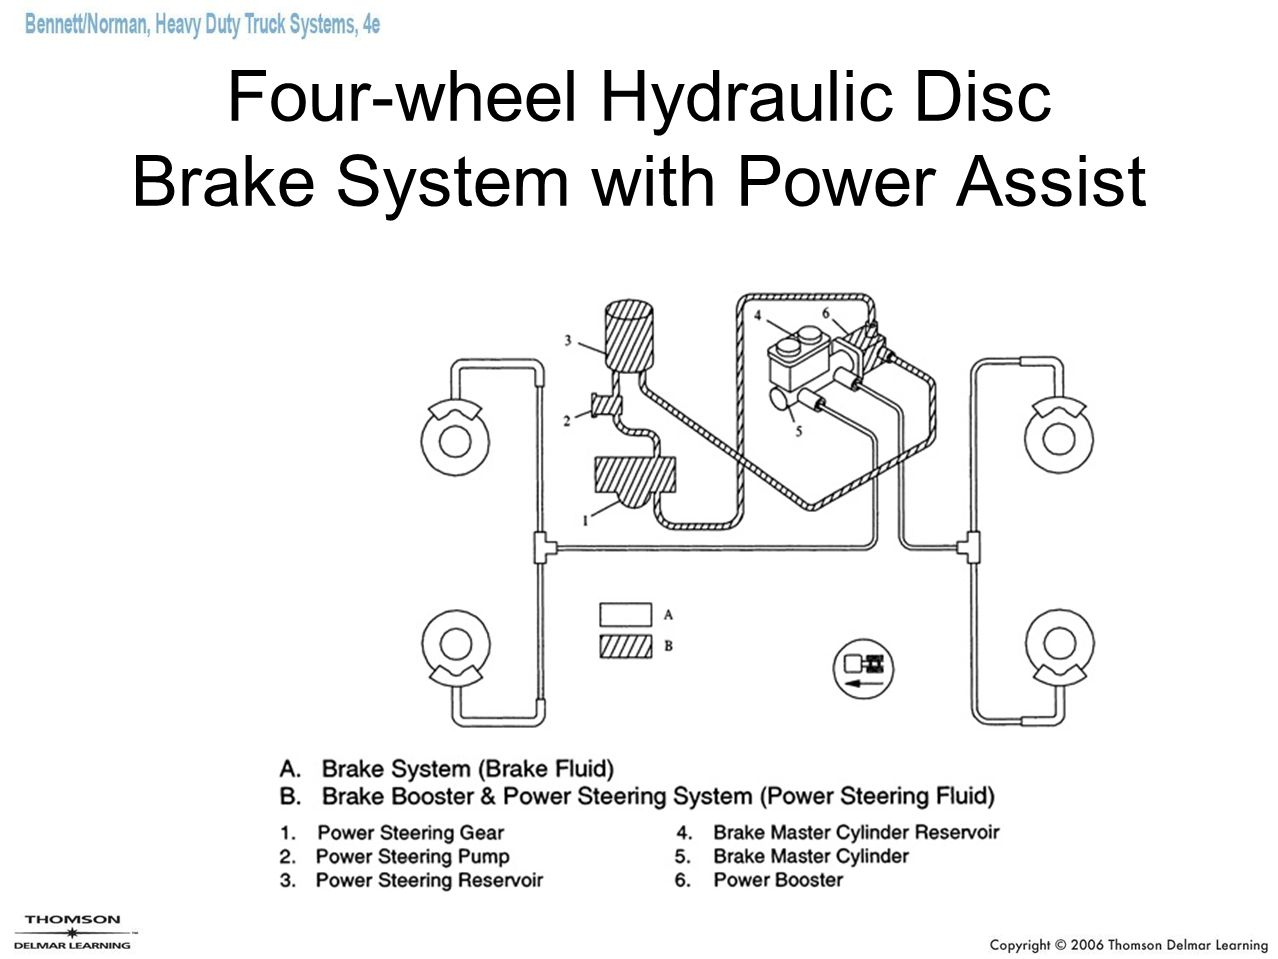 Four-wheel Hydraulic Disc Brake System with Power Assist